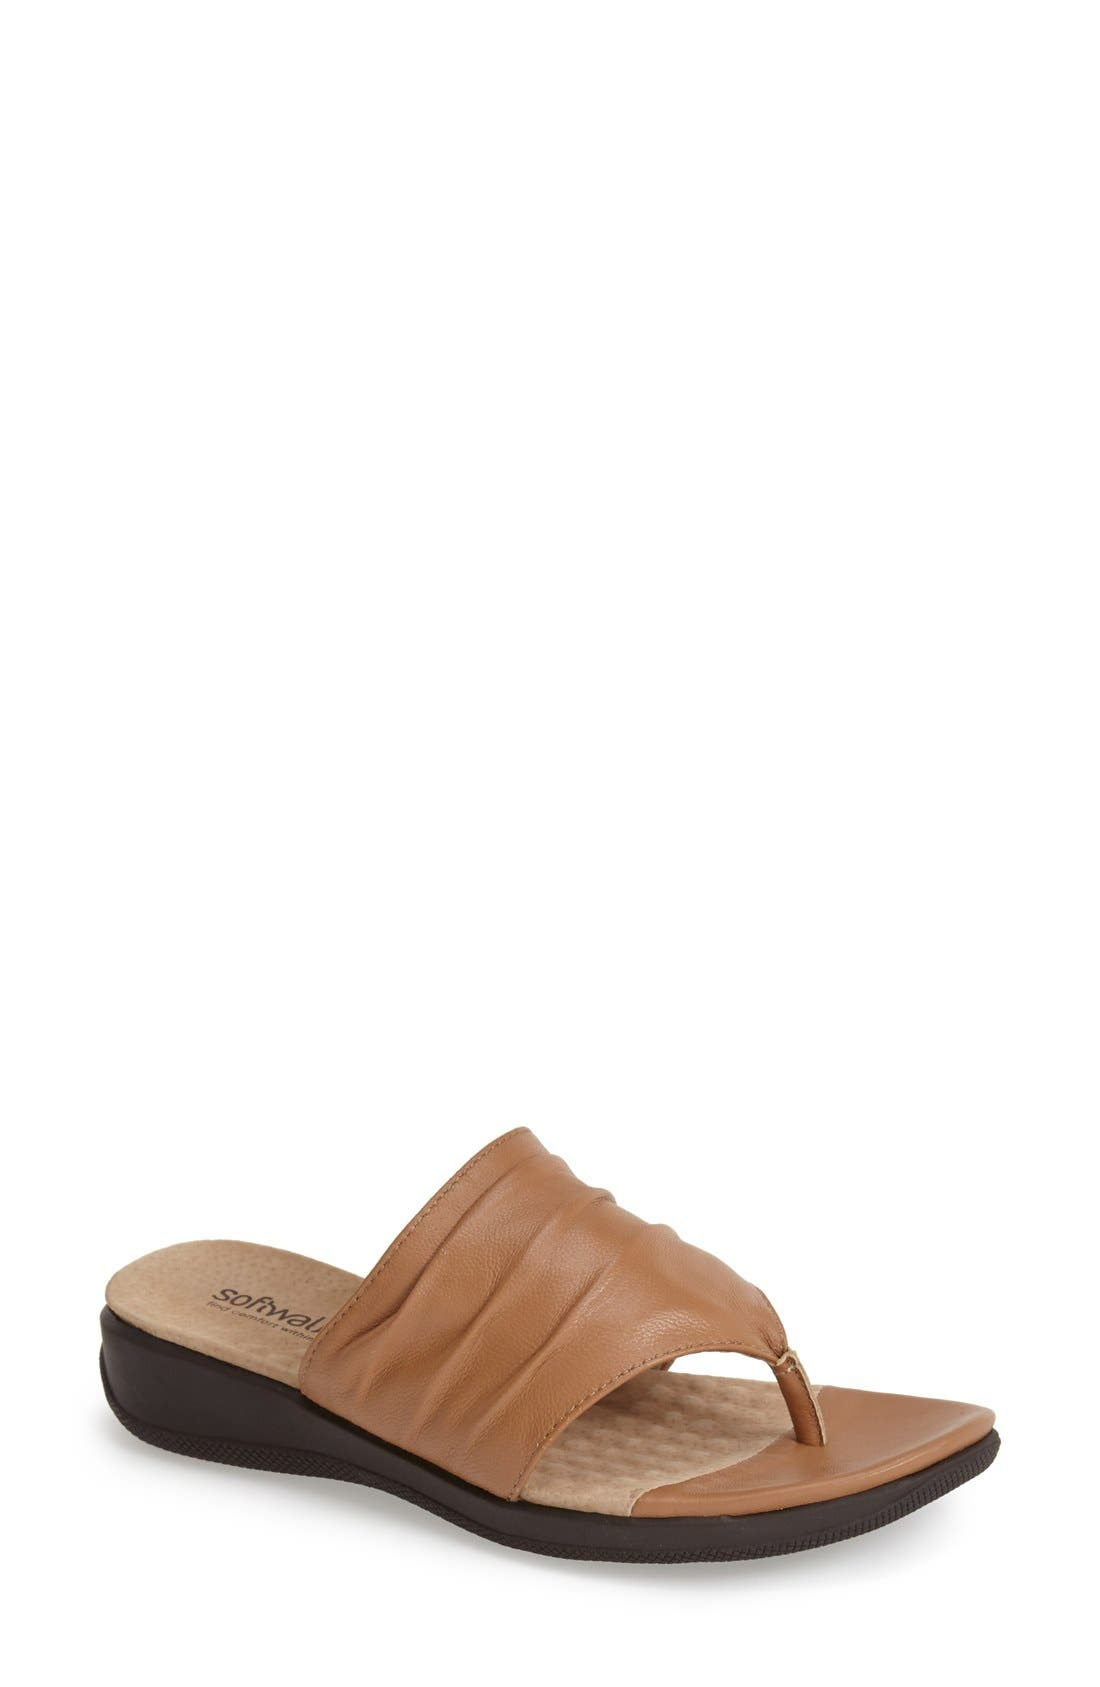 'Toma' Thong Sandal,                             Main thumbnail 1, color,                             Tan